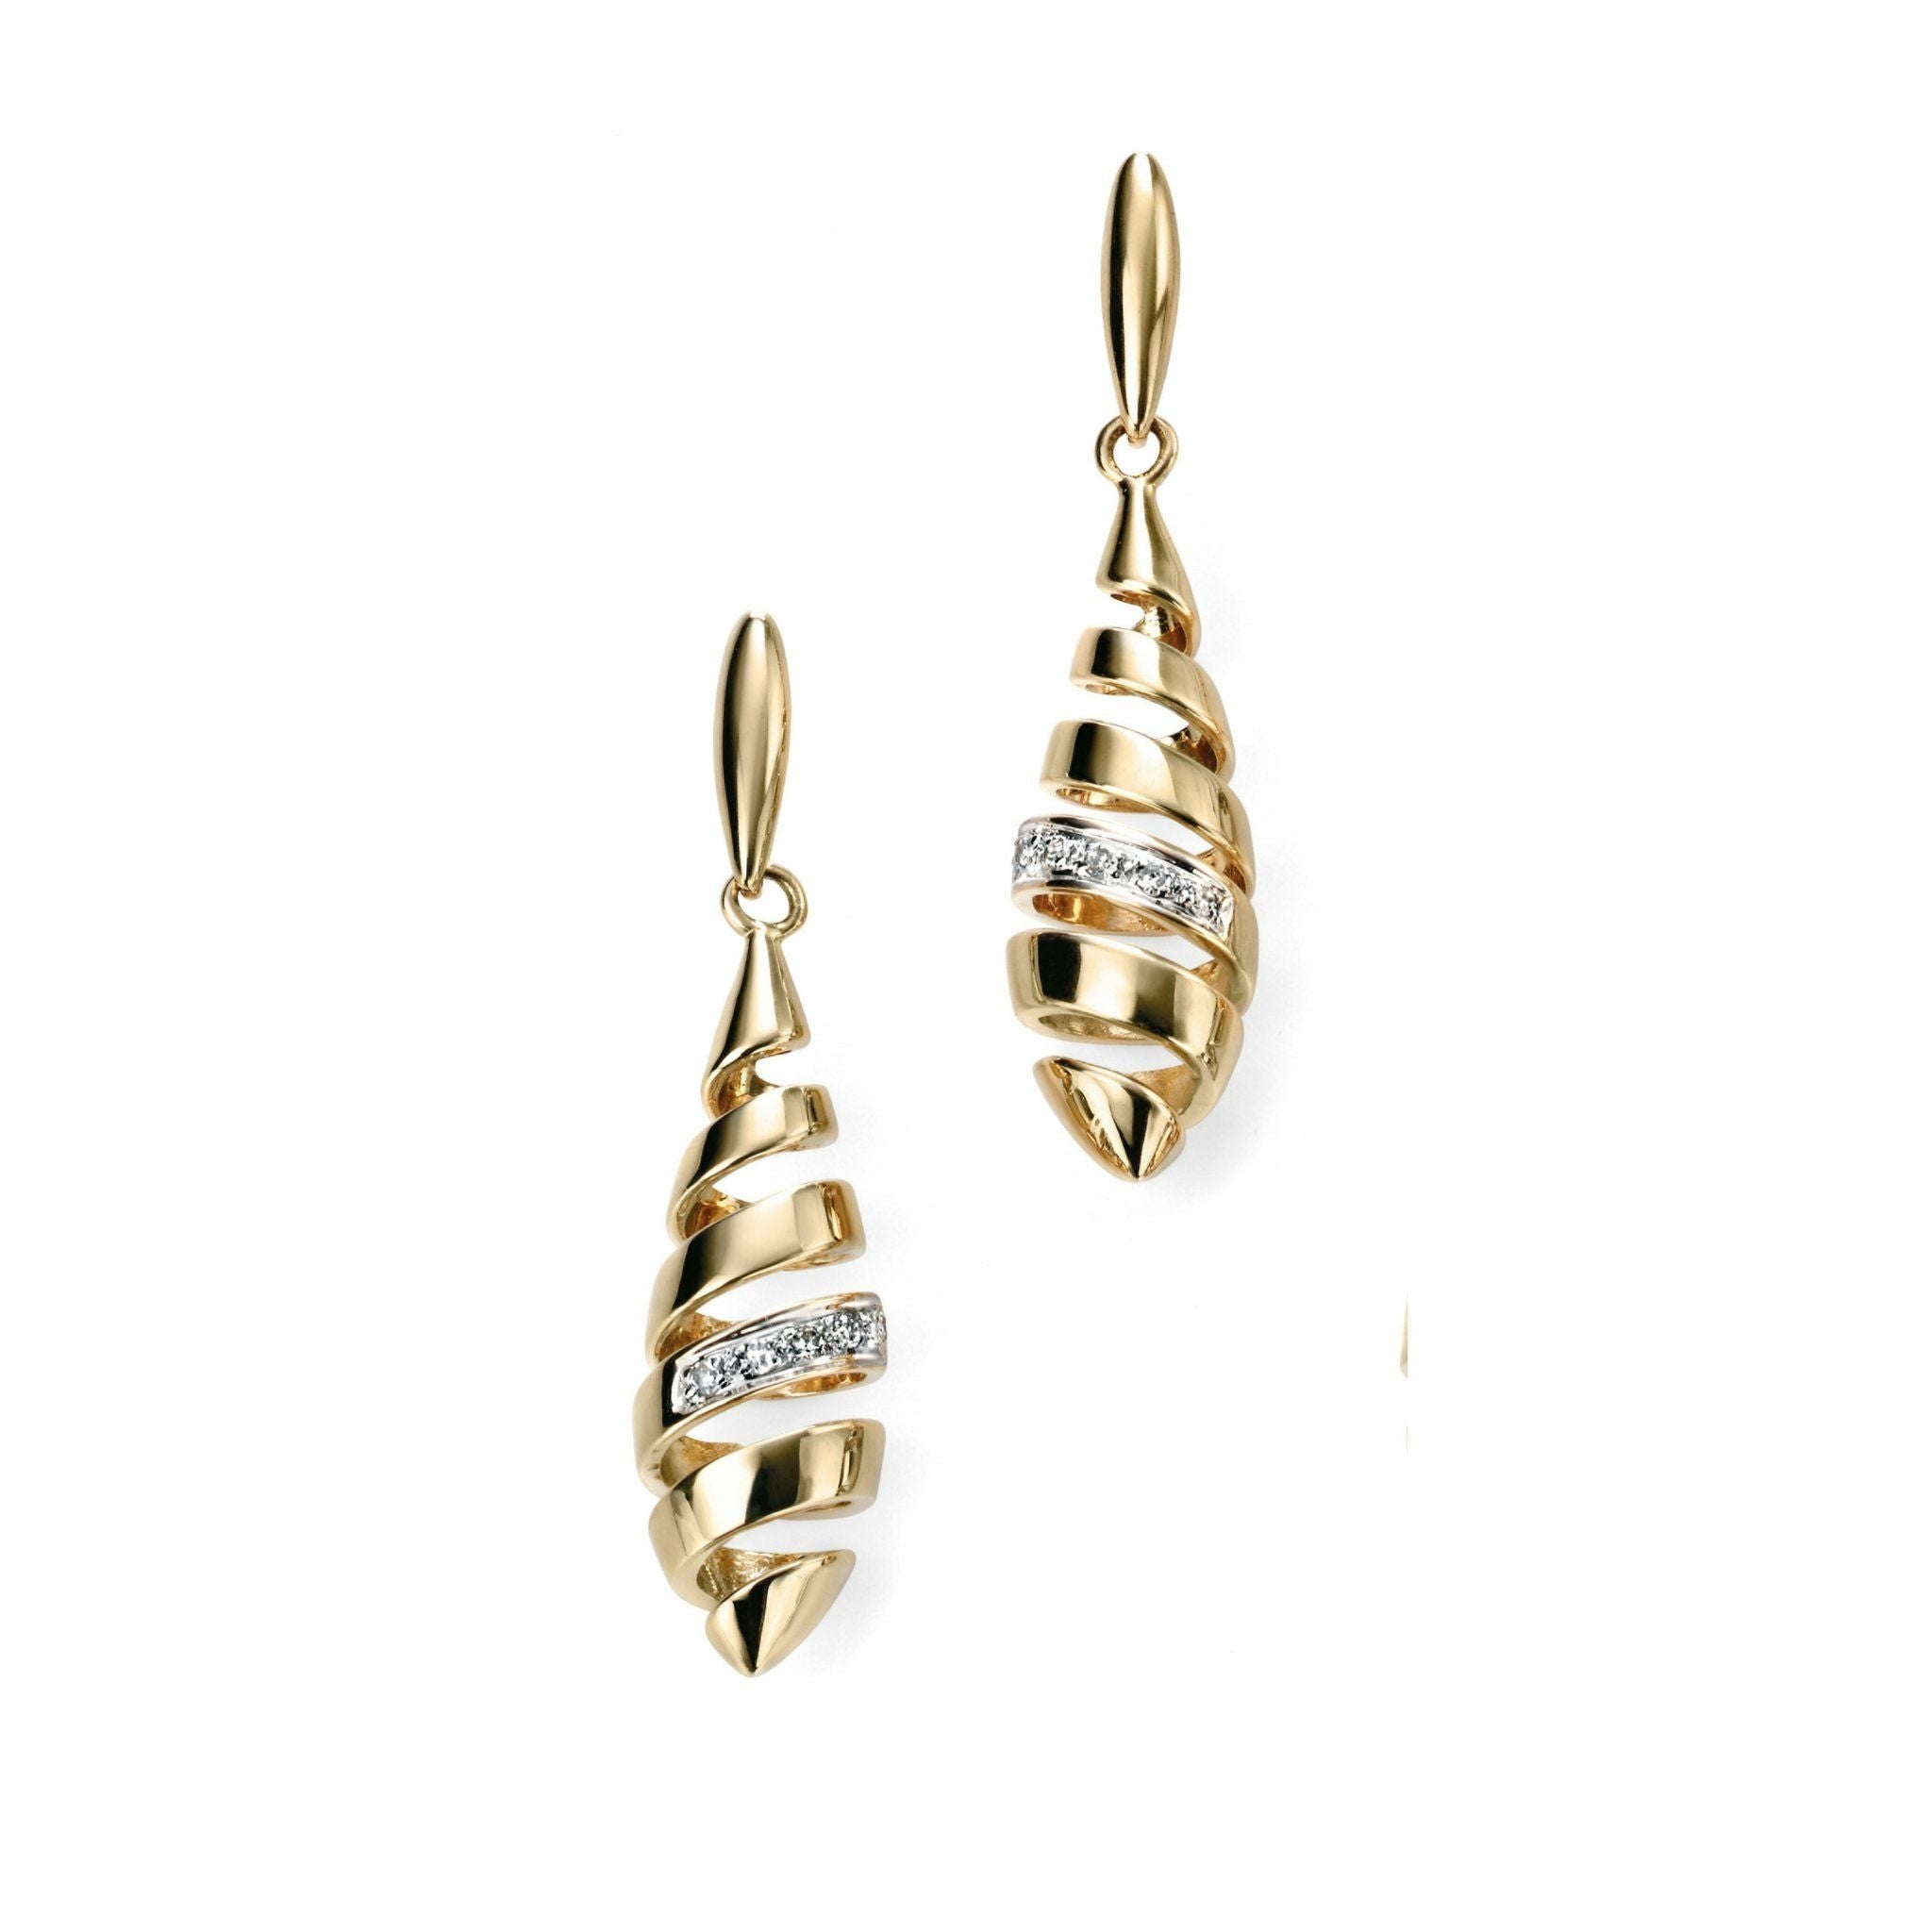 9ct Yellow Gold & Diamond Drop Earrings Earrings